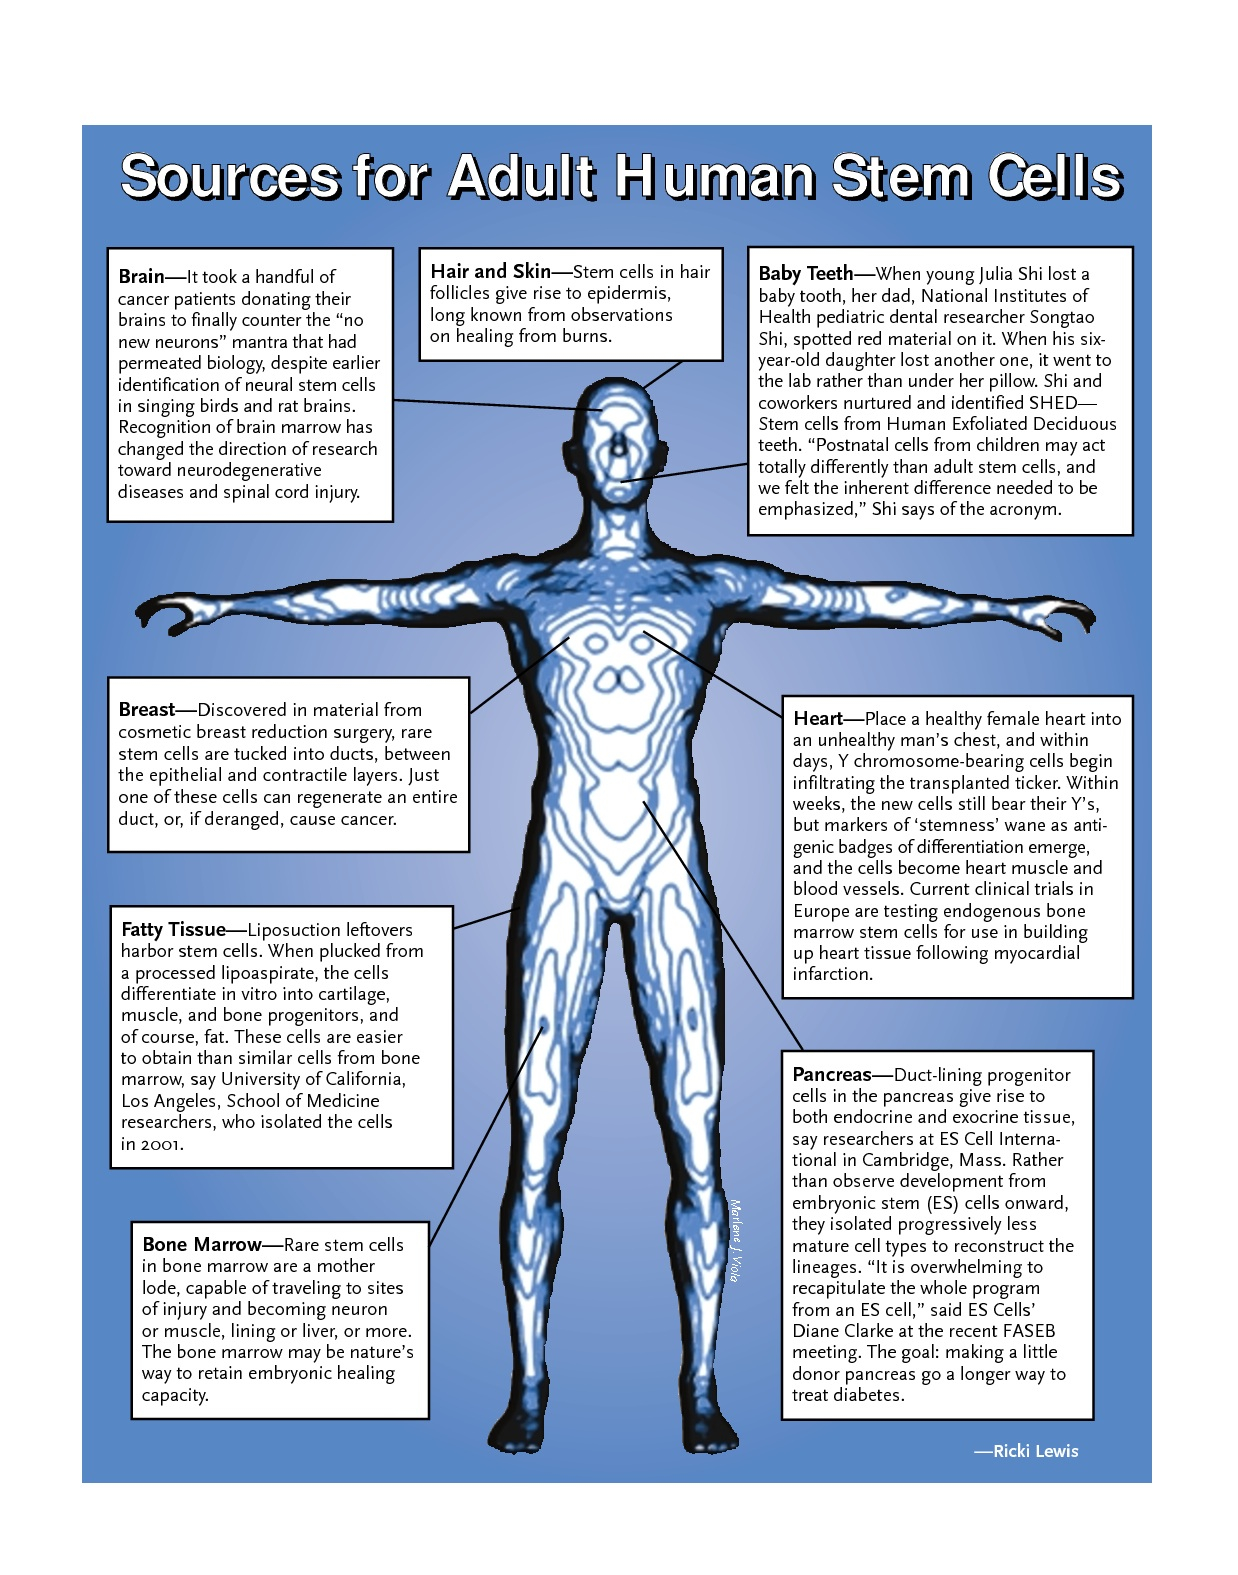 Adult stem cell sources